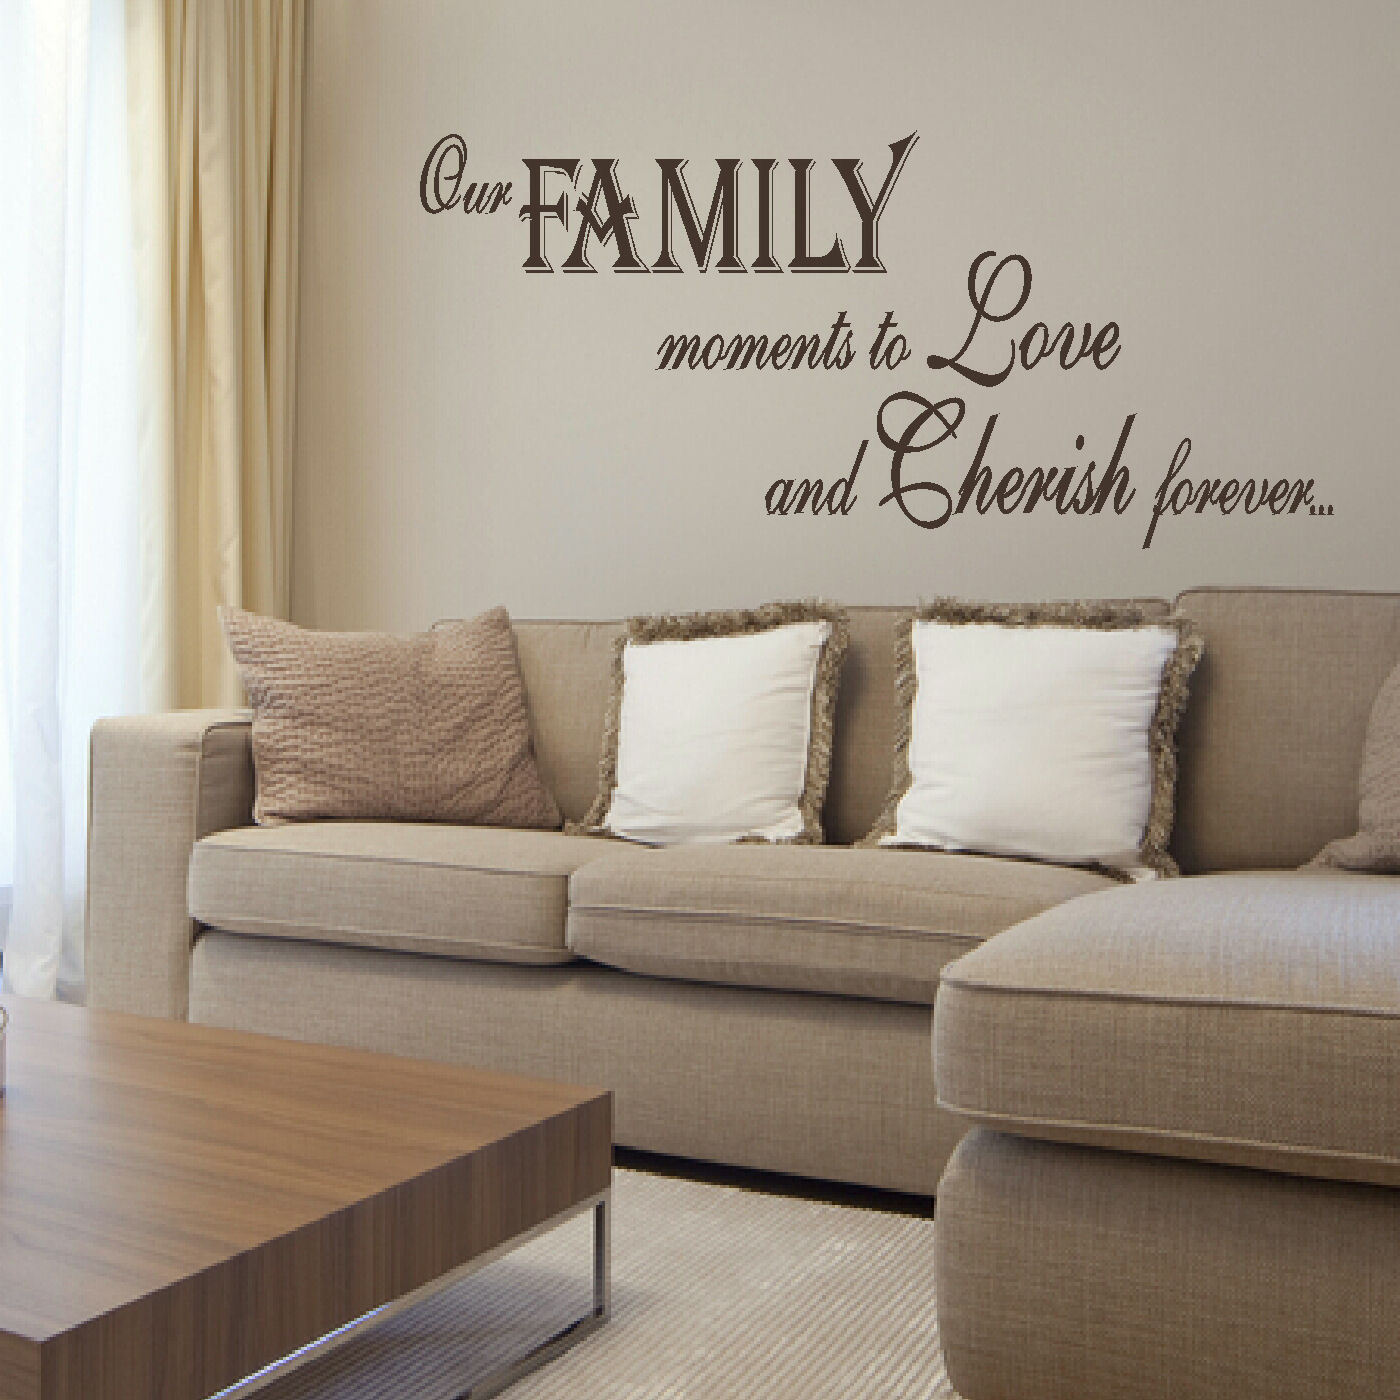 Large bedroom quote family love giant wall art sticker transfer quote amipublicfo Choice Image